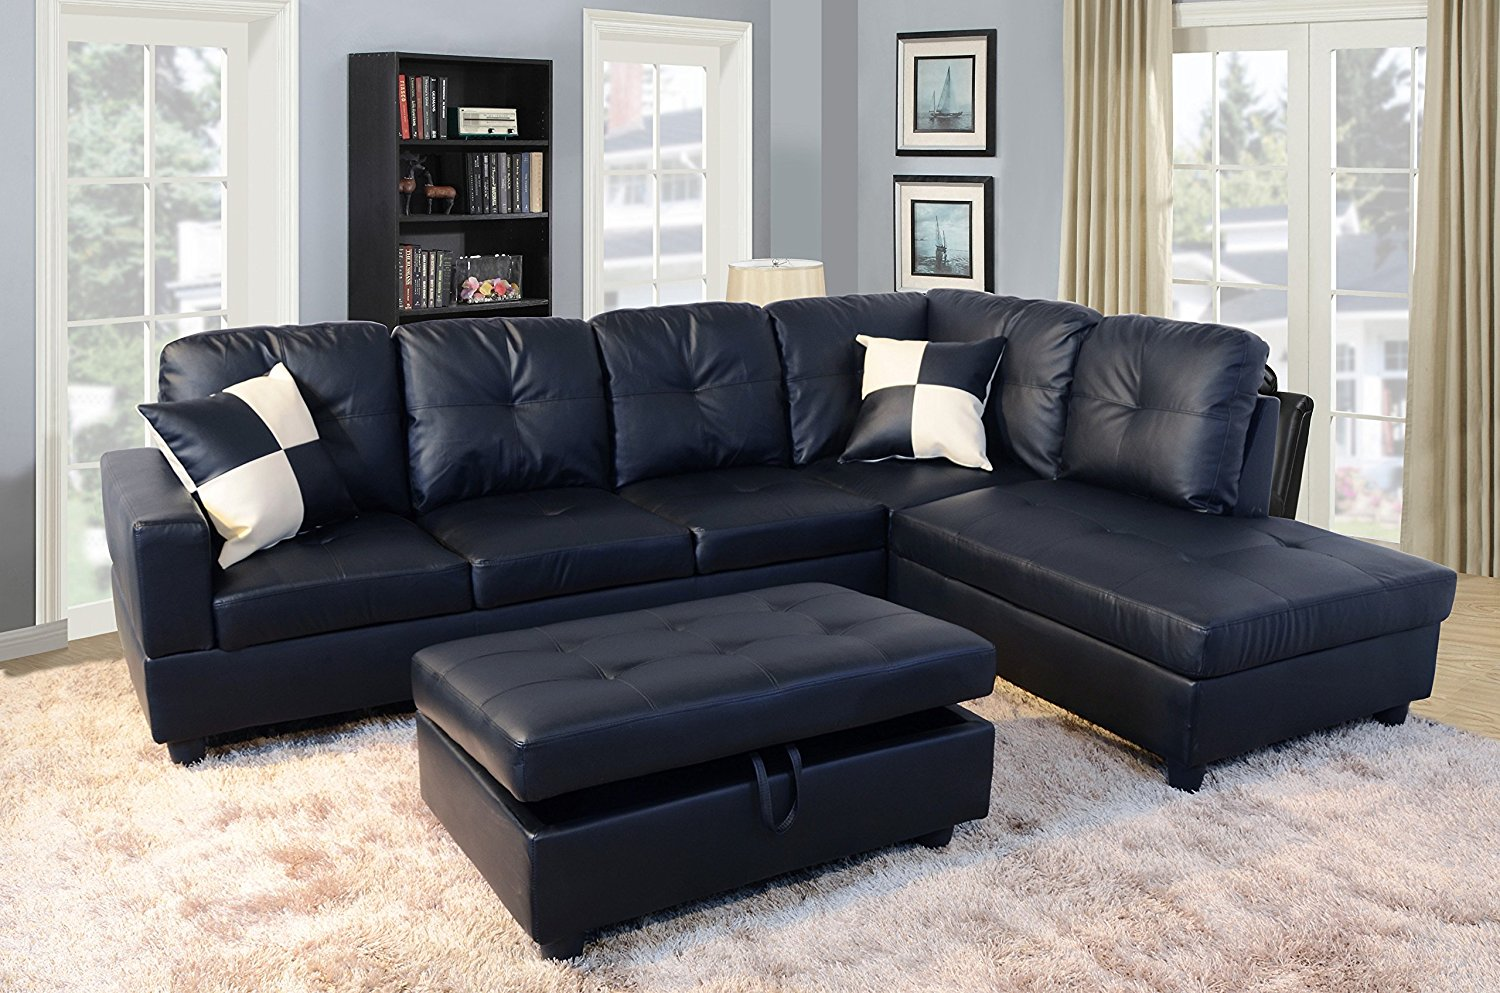 Product Image 3 Piece Faux Leather Contemporary Right Facing Sectional Sofa  Set With Ottoman, 2 Accent